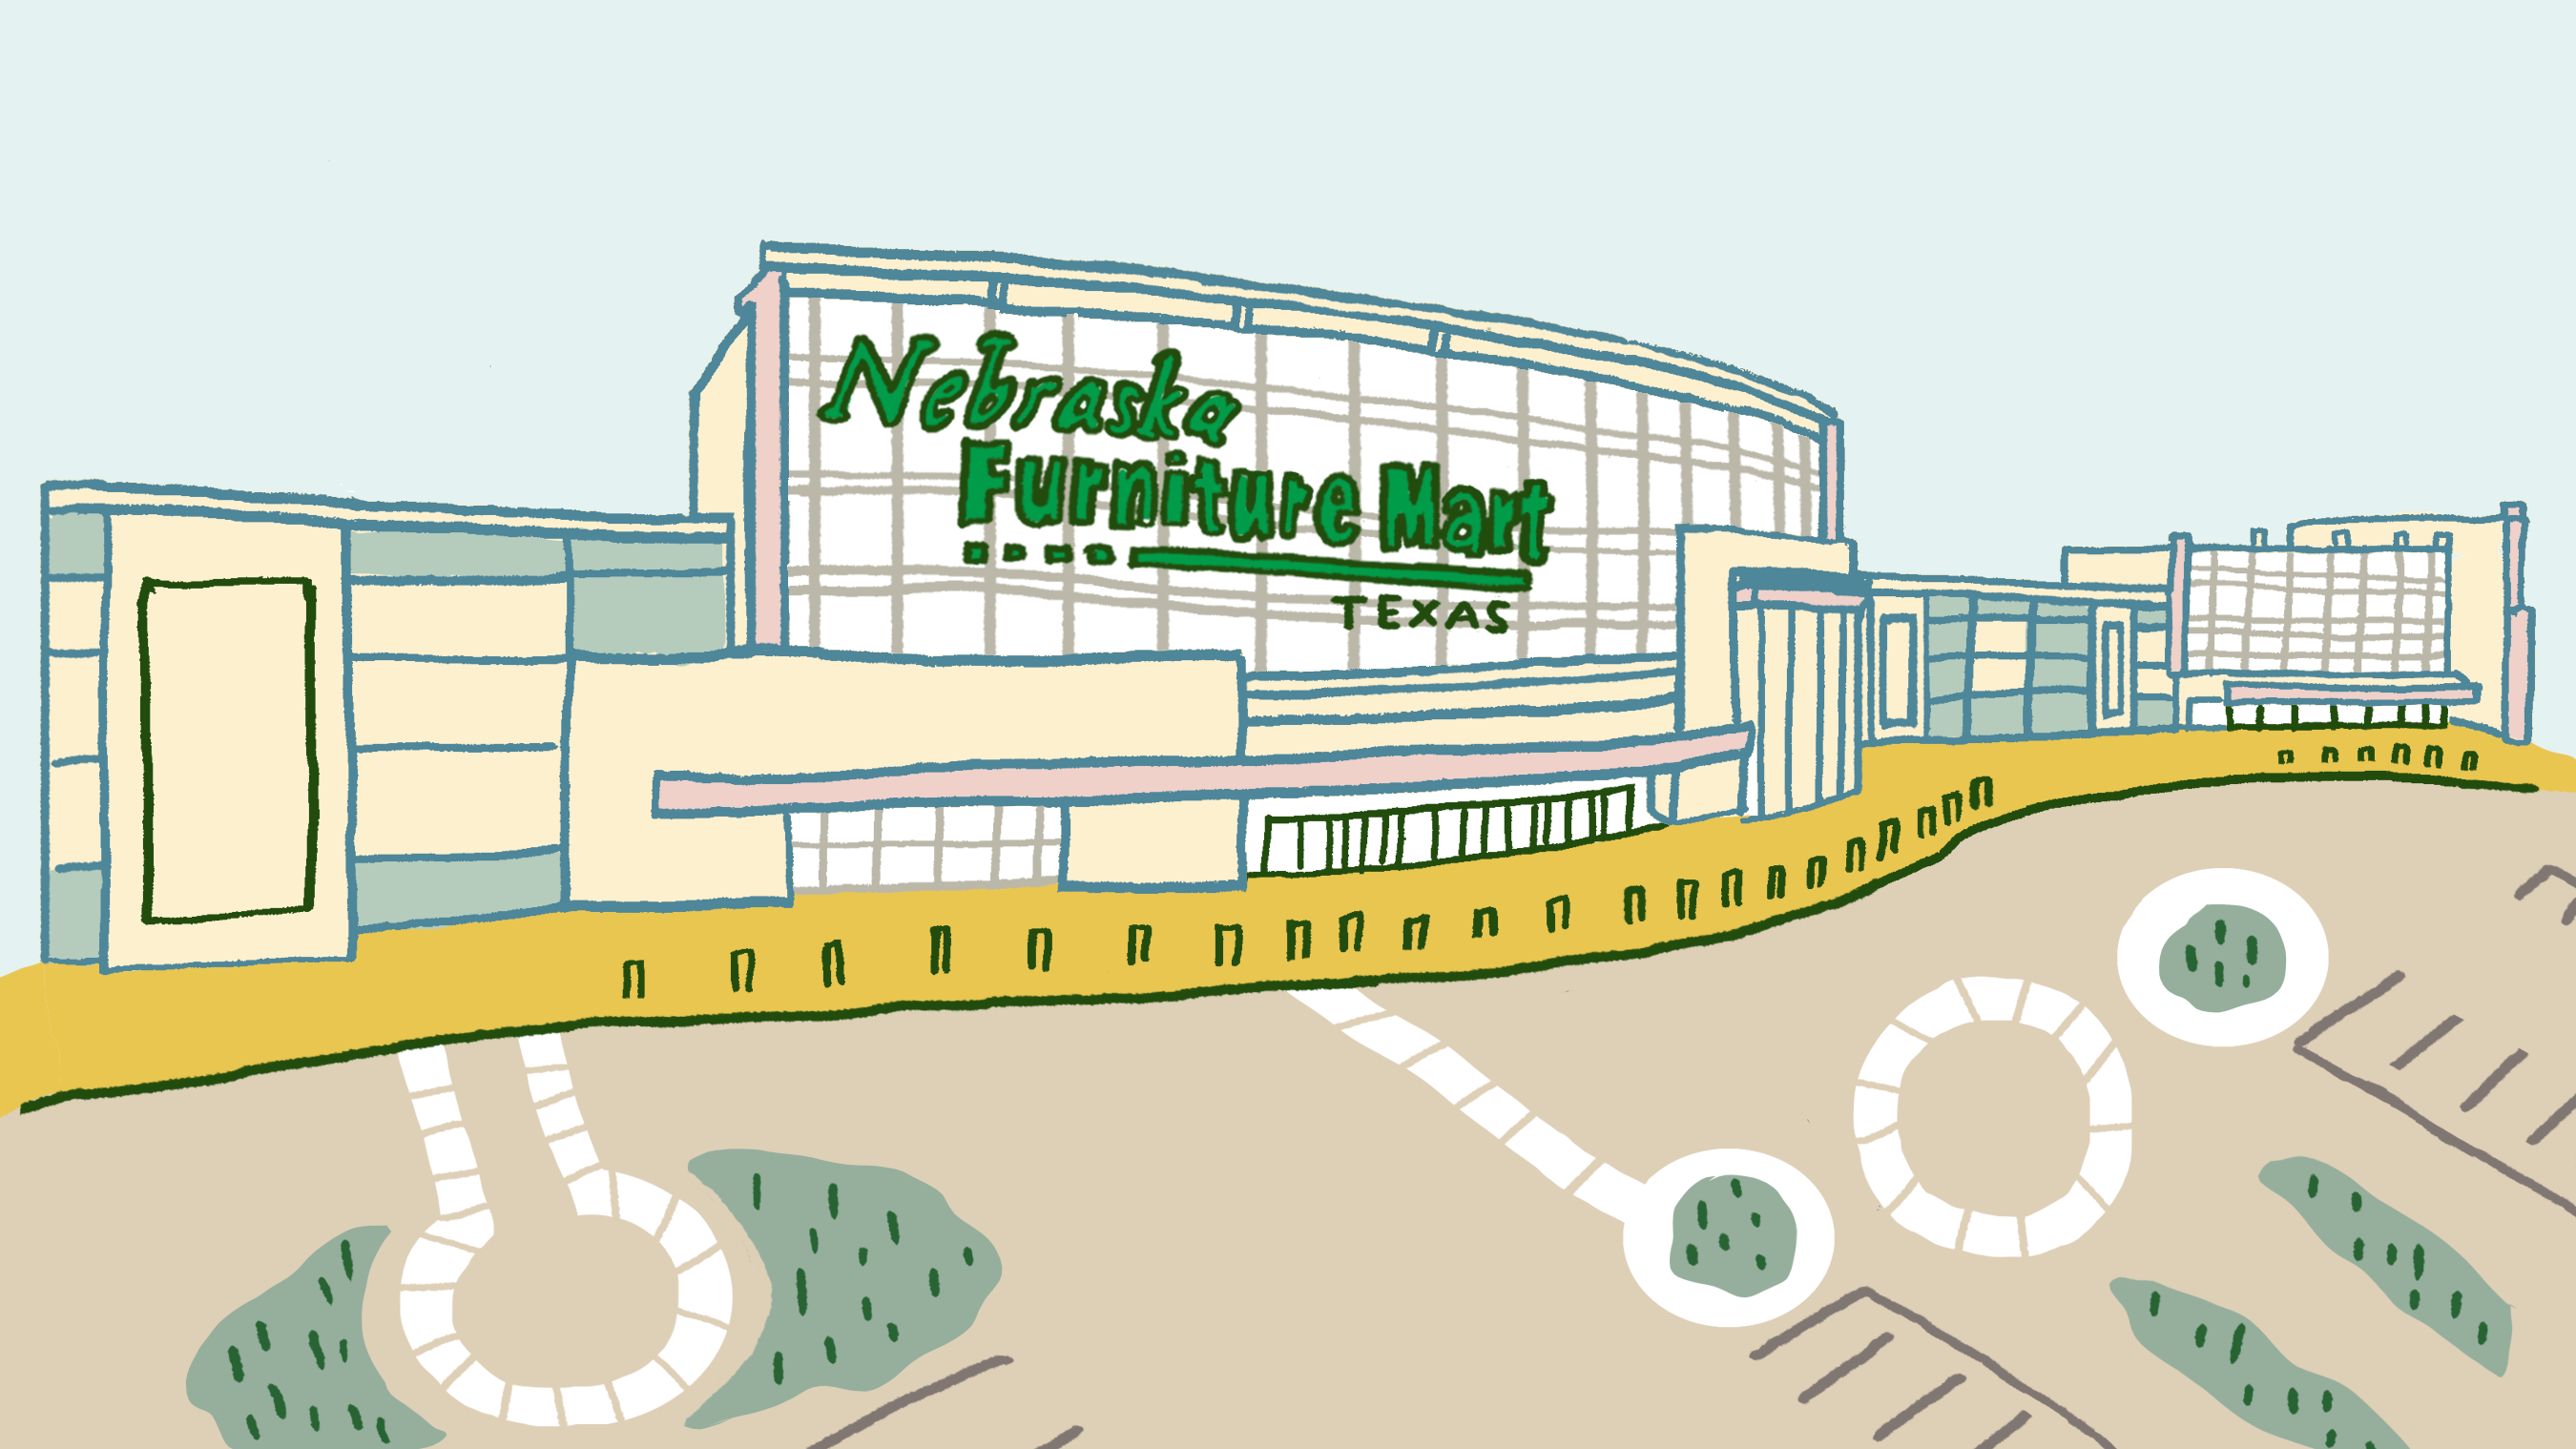 Inside Nebraska Furniture Mart, Texasu0027s Largest Furniture Store   Curbed